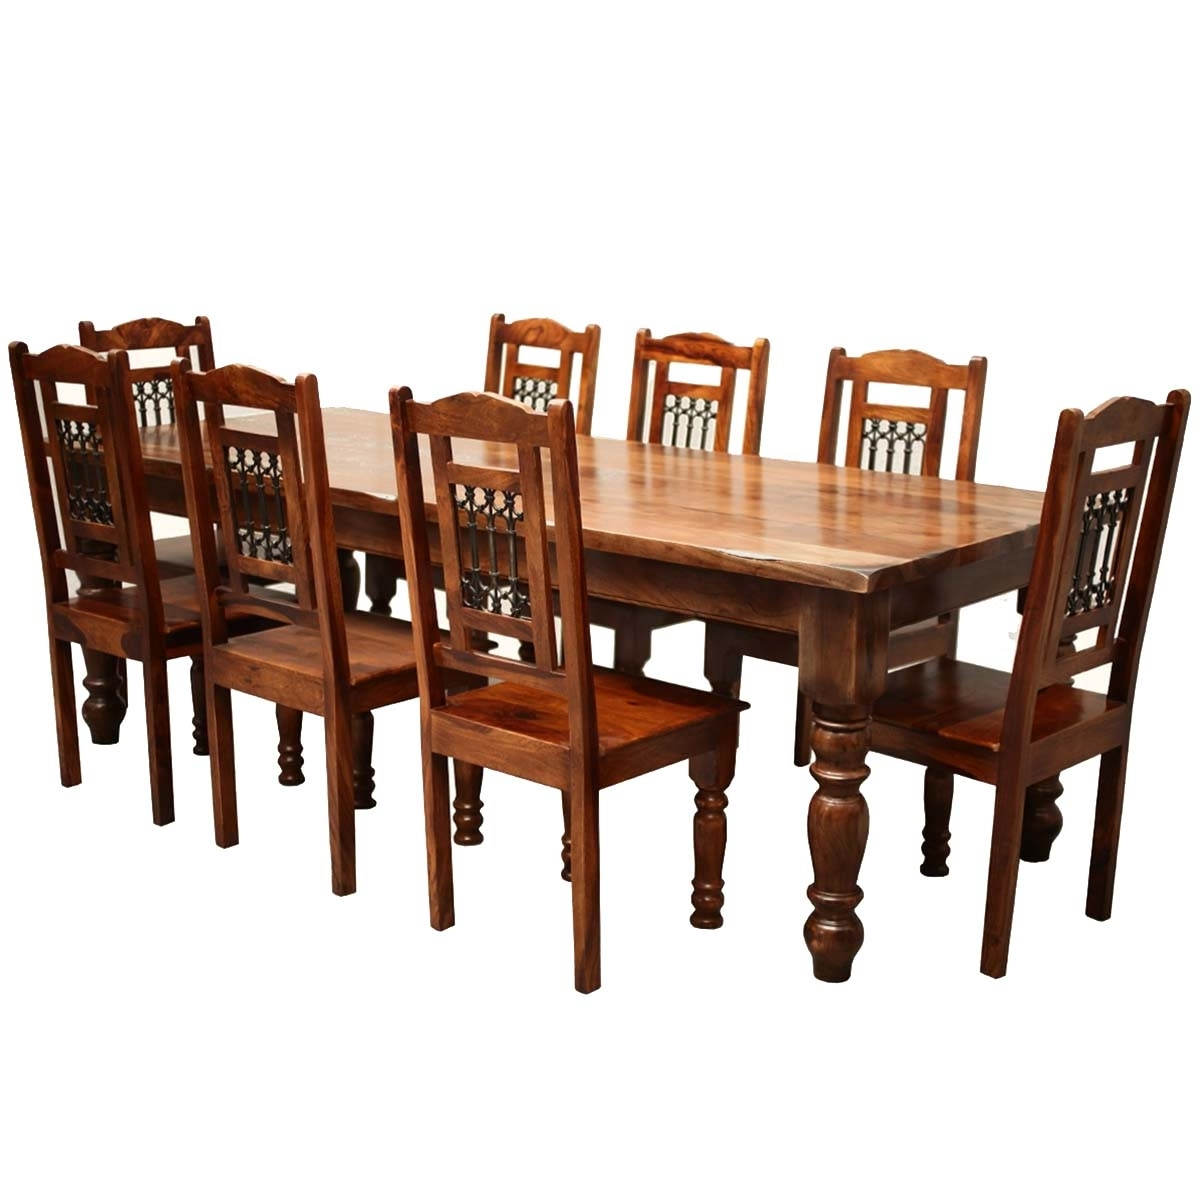 Dining Tables 8 Chairs Set In Most Popular Rustic Furniture Solid Wood Large Dining Table & 8 Chair Set (Gallery 6 of 25)